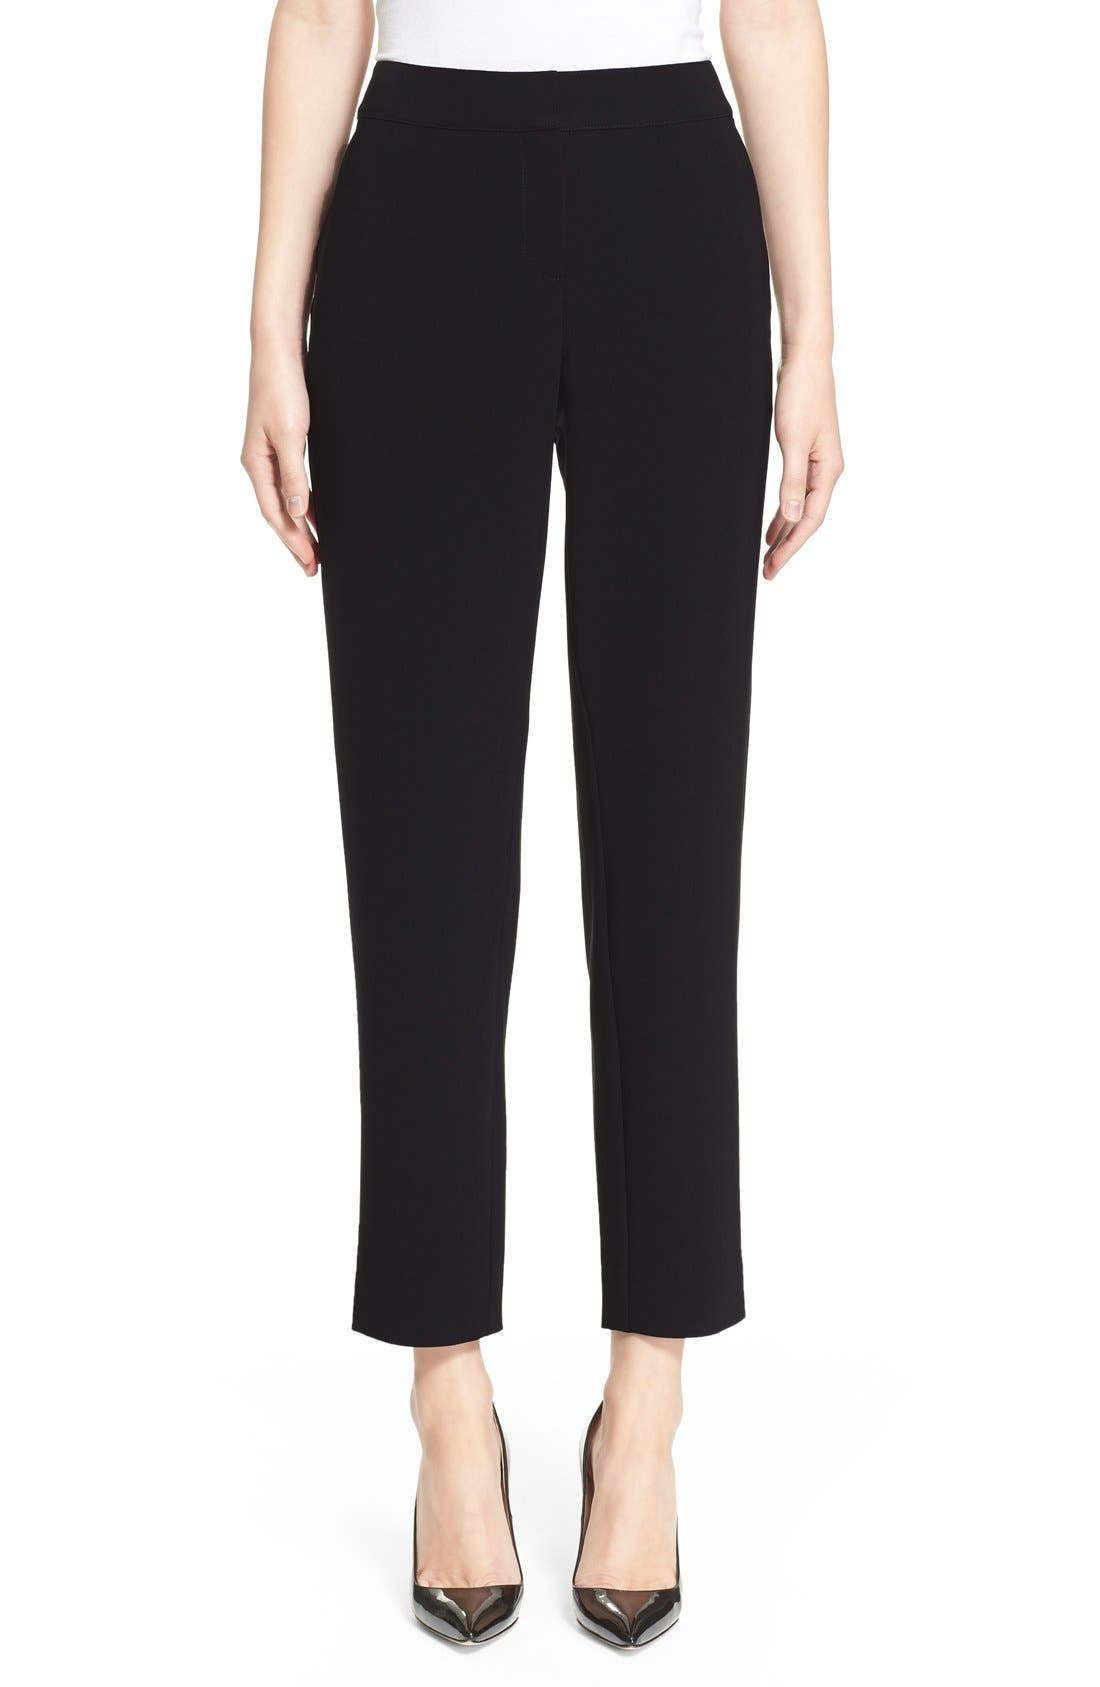 Alternate Image 1 Selected - St. John Collection 'Emma' Crop Crepe Marocain Pants